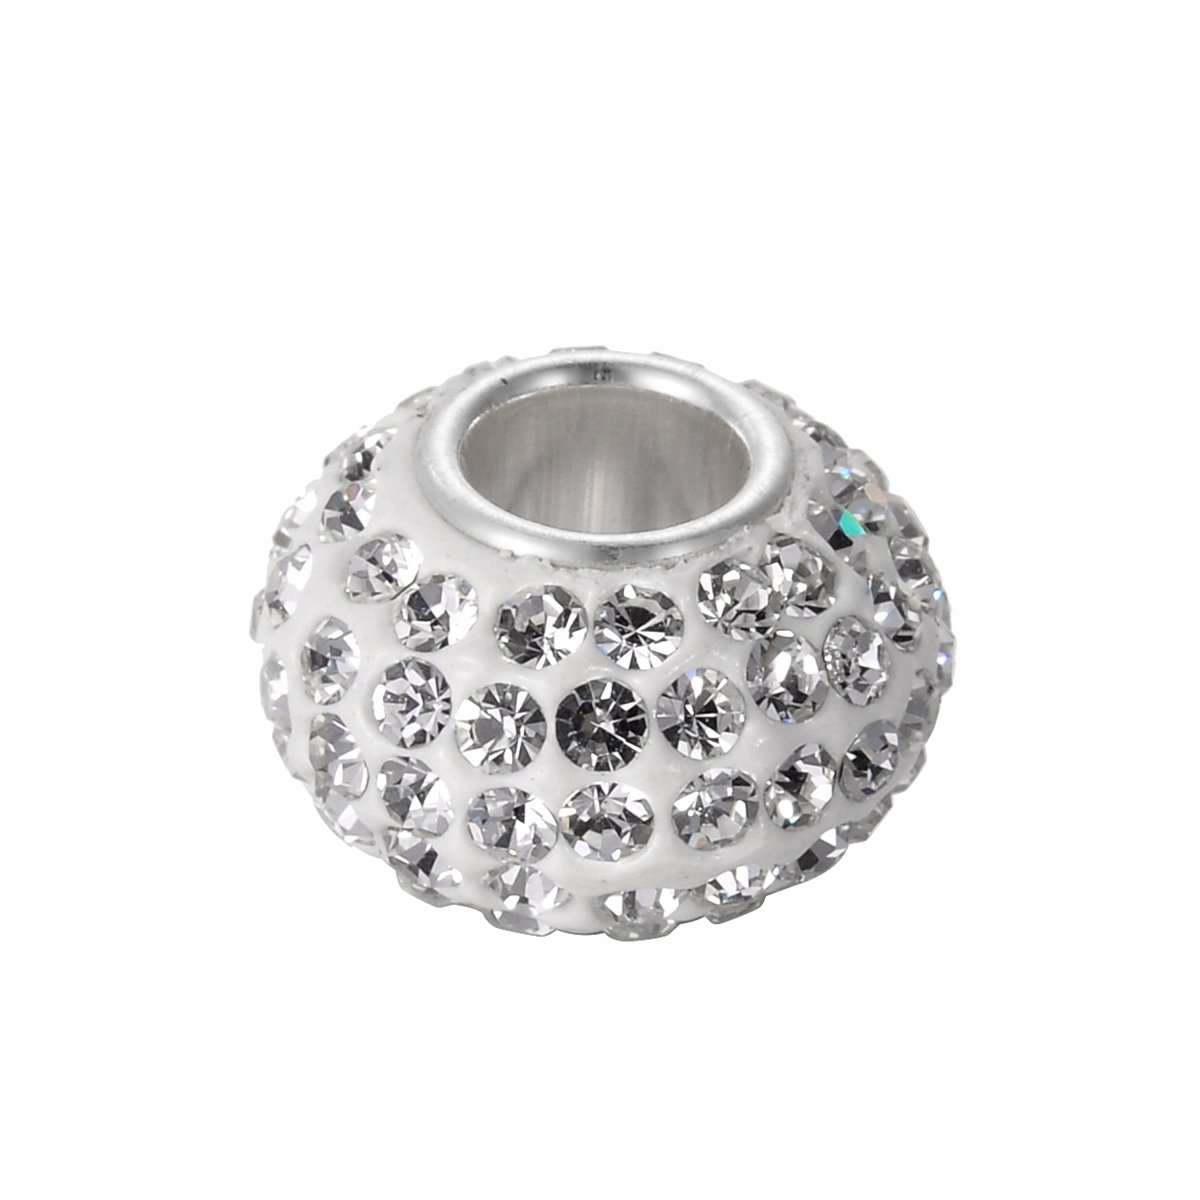 HooAMI 925 Sterling Silver Clear Crystal Ball Beads Spacer Birthstone Fit Charm Bracelets 12x7mm